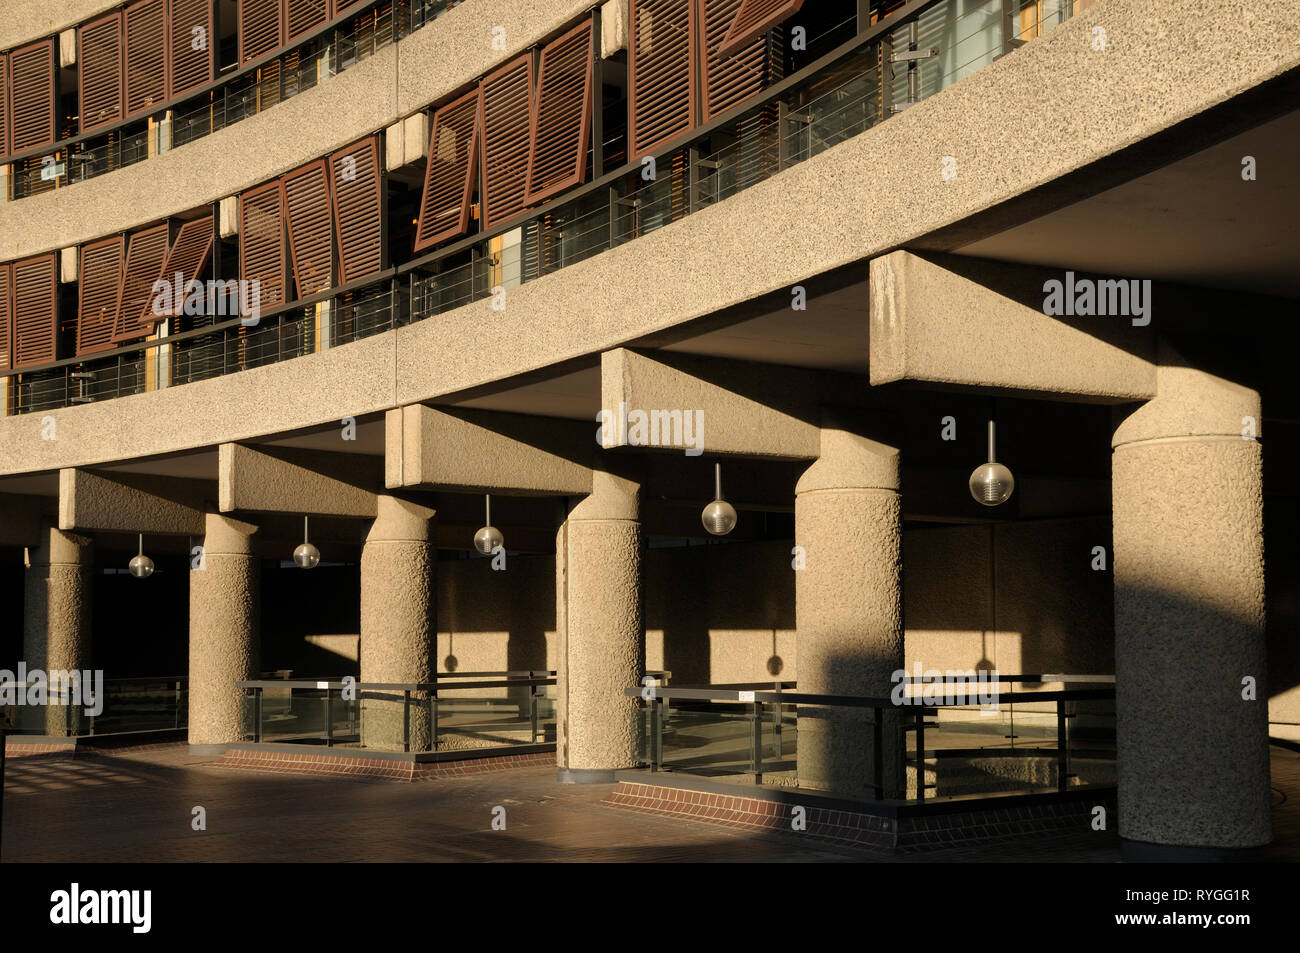 Architectural detail showing the hard lines and curves of Brutalist architecture, Barbican Estate, London EC2, England, UK Stock Photo